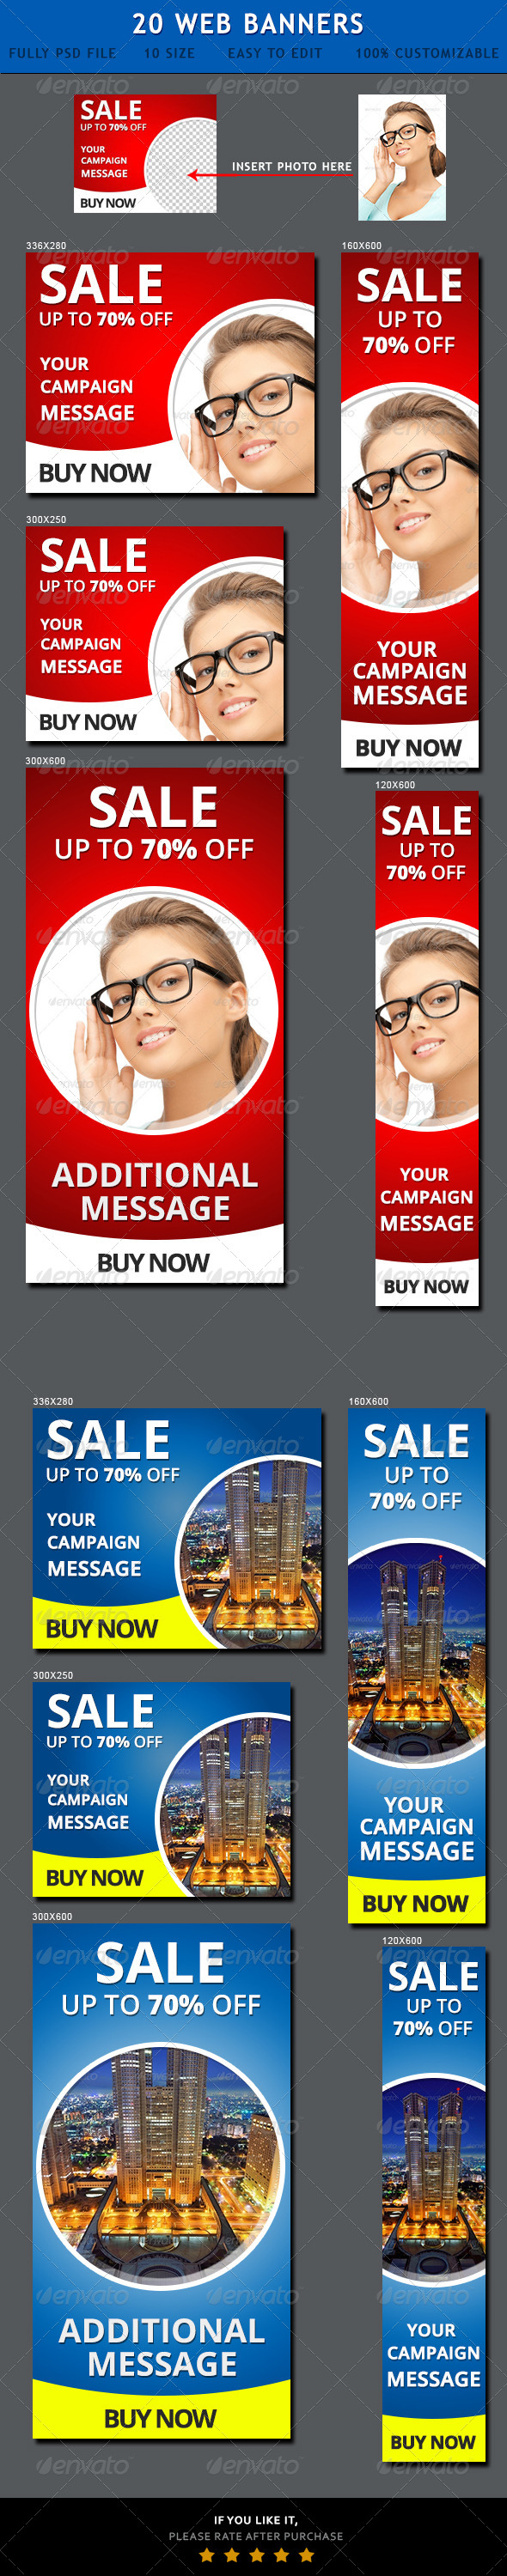 Sales Website Banner Ads - Banners & Ads Web Elements